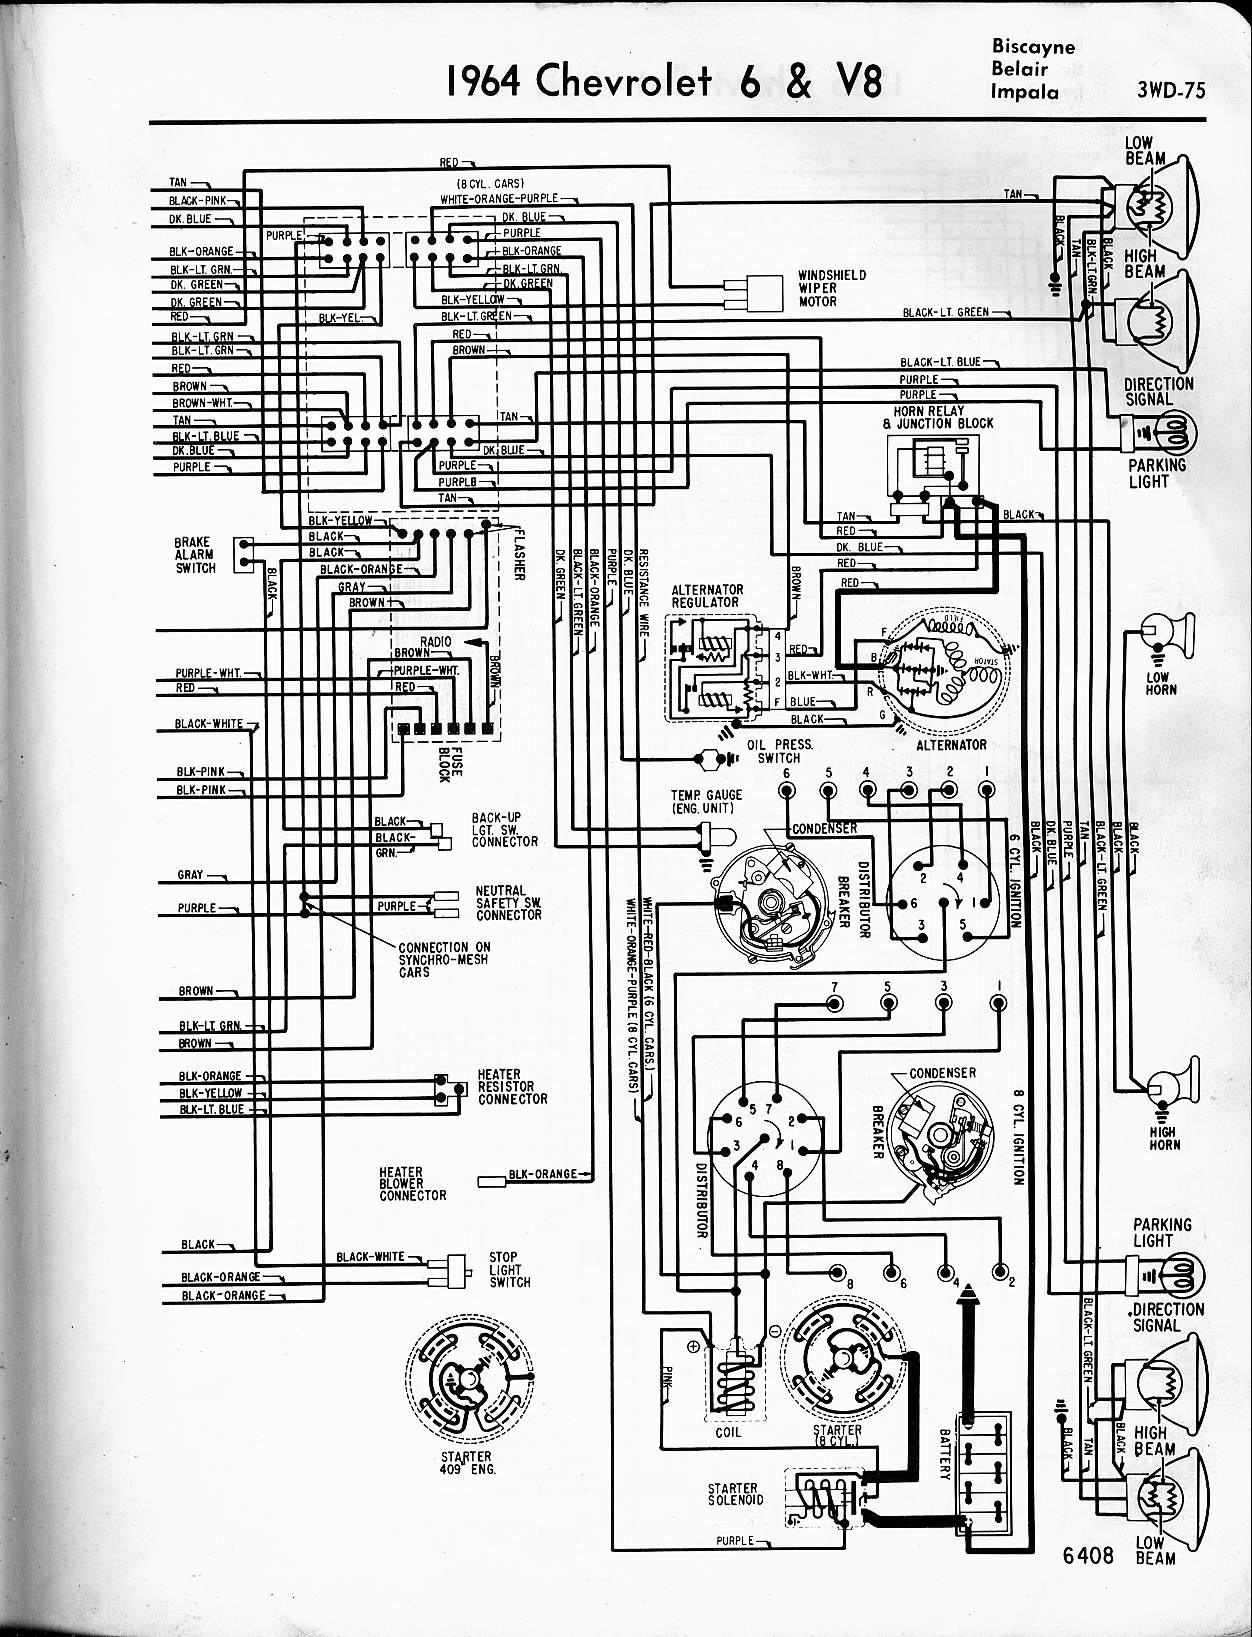 MWireChev64_3WD 075 1963 impala wiring diagram 1963 wiring diagrams instruction 2008 chevy impala wiring diagram at bayanpartner.co